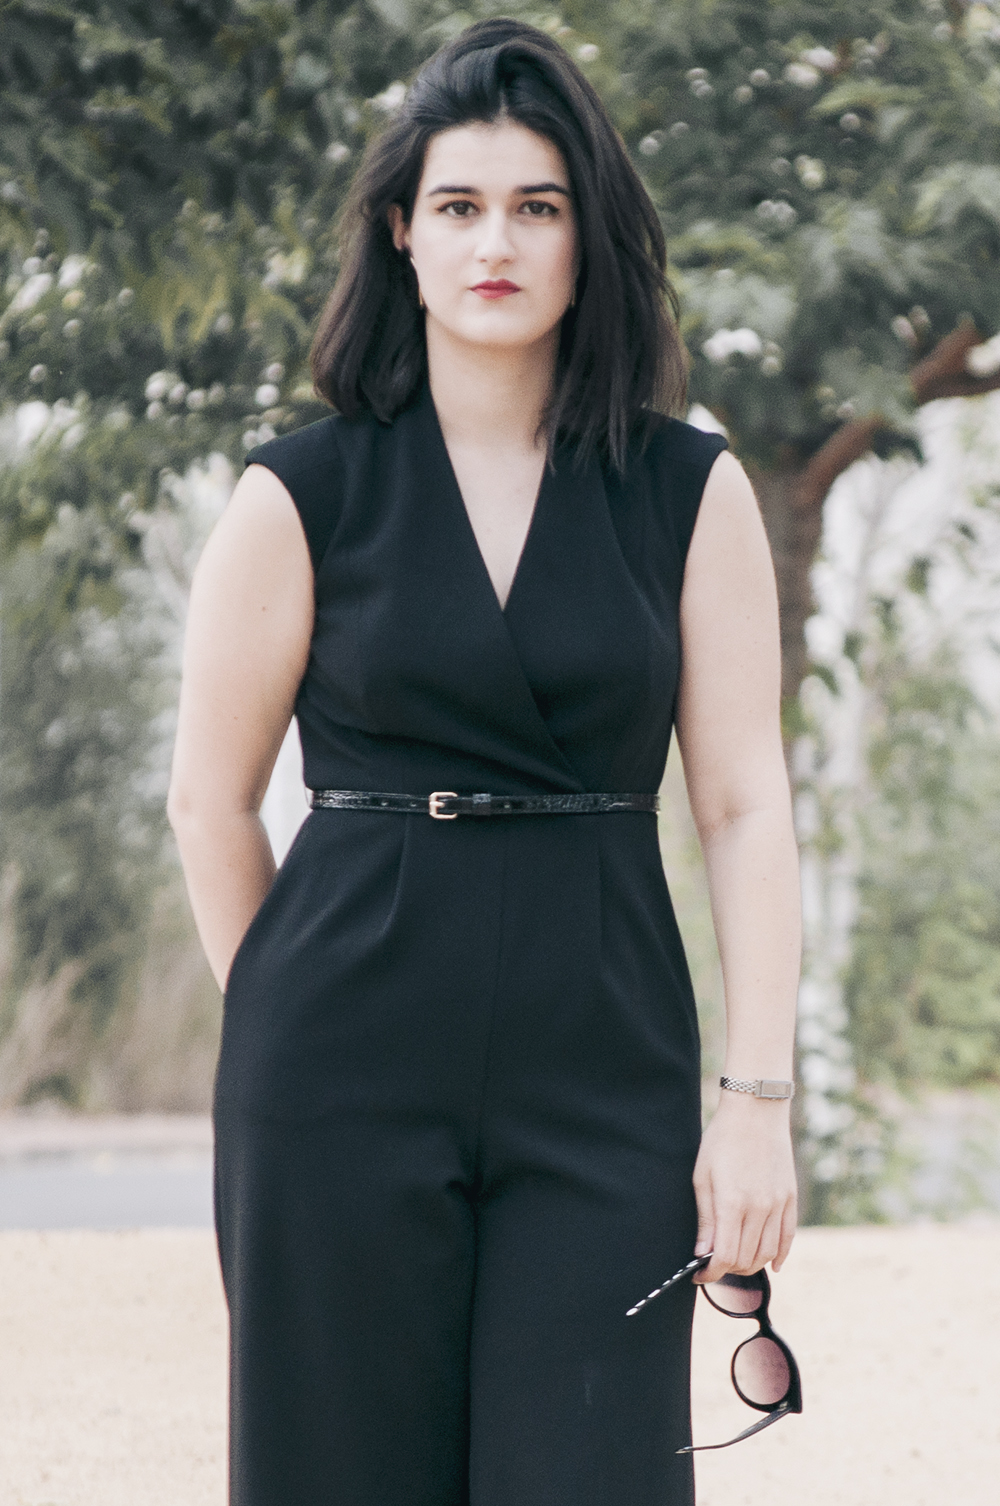 ootd somethingfashion valencia spain bloggers influencers calvinklein totalblack dresses summer lookdujour_0089 copia